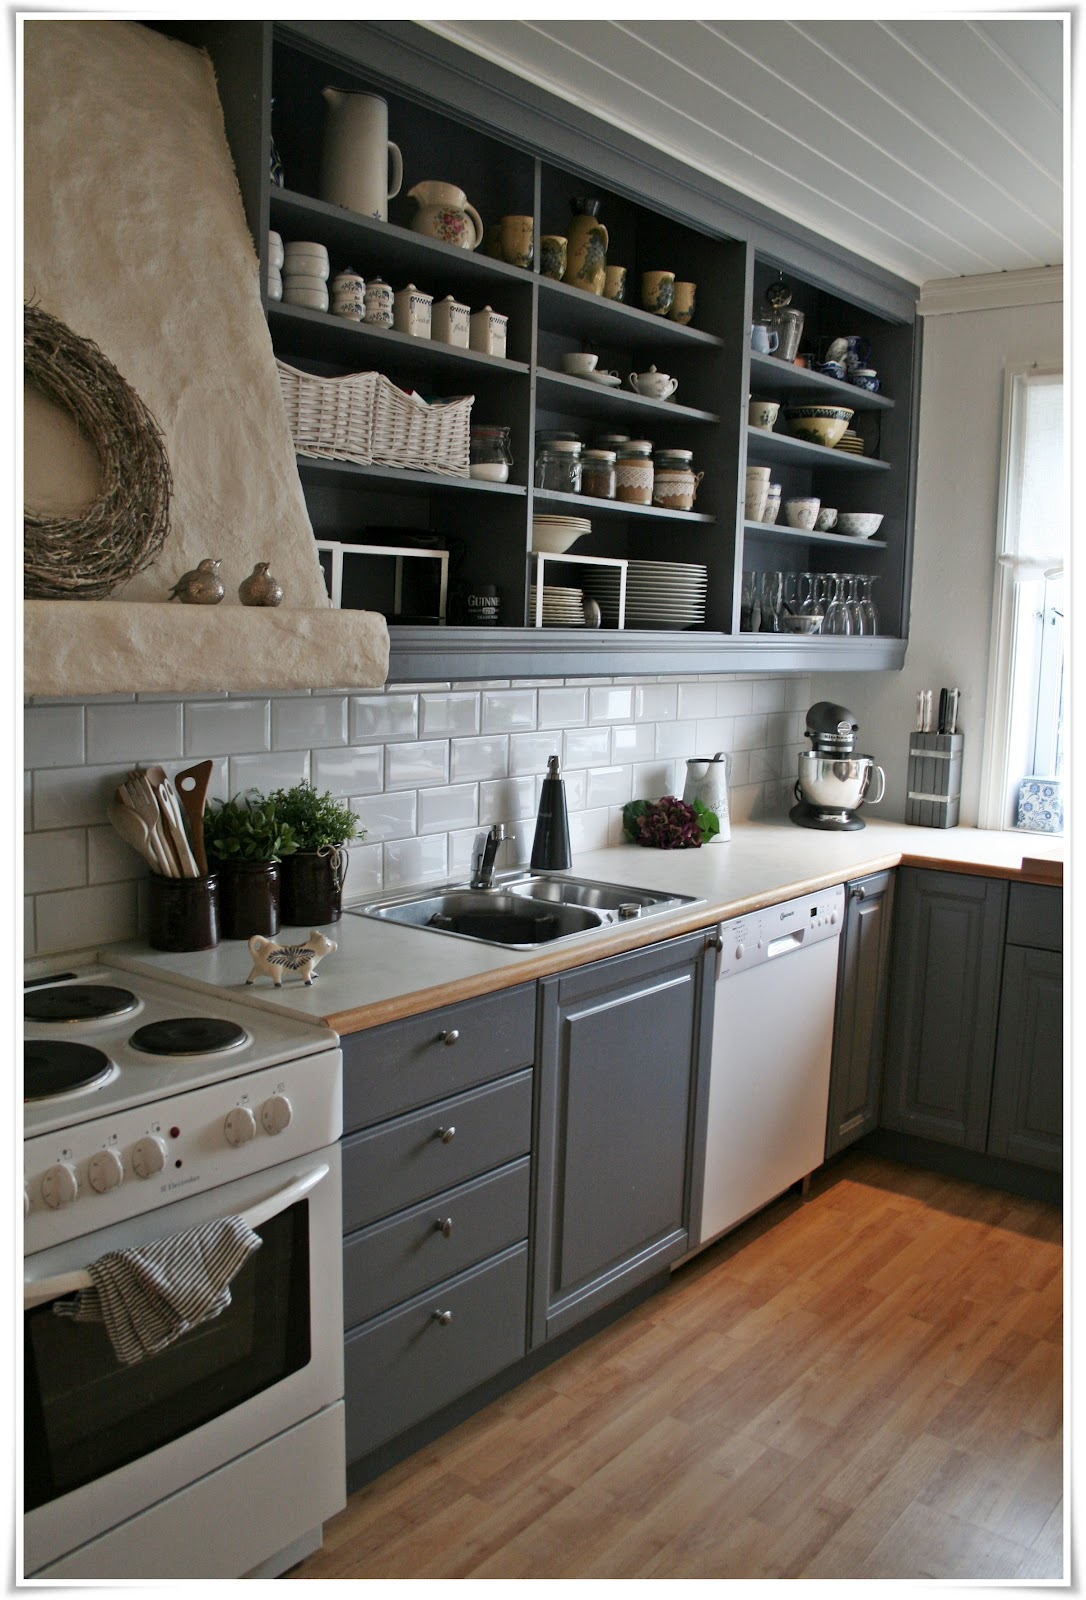 The Benefits Of Open Shelving In The Kitchen: 26 Kitchen Open Shelves Ideas